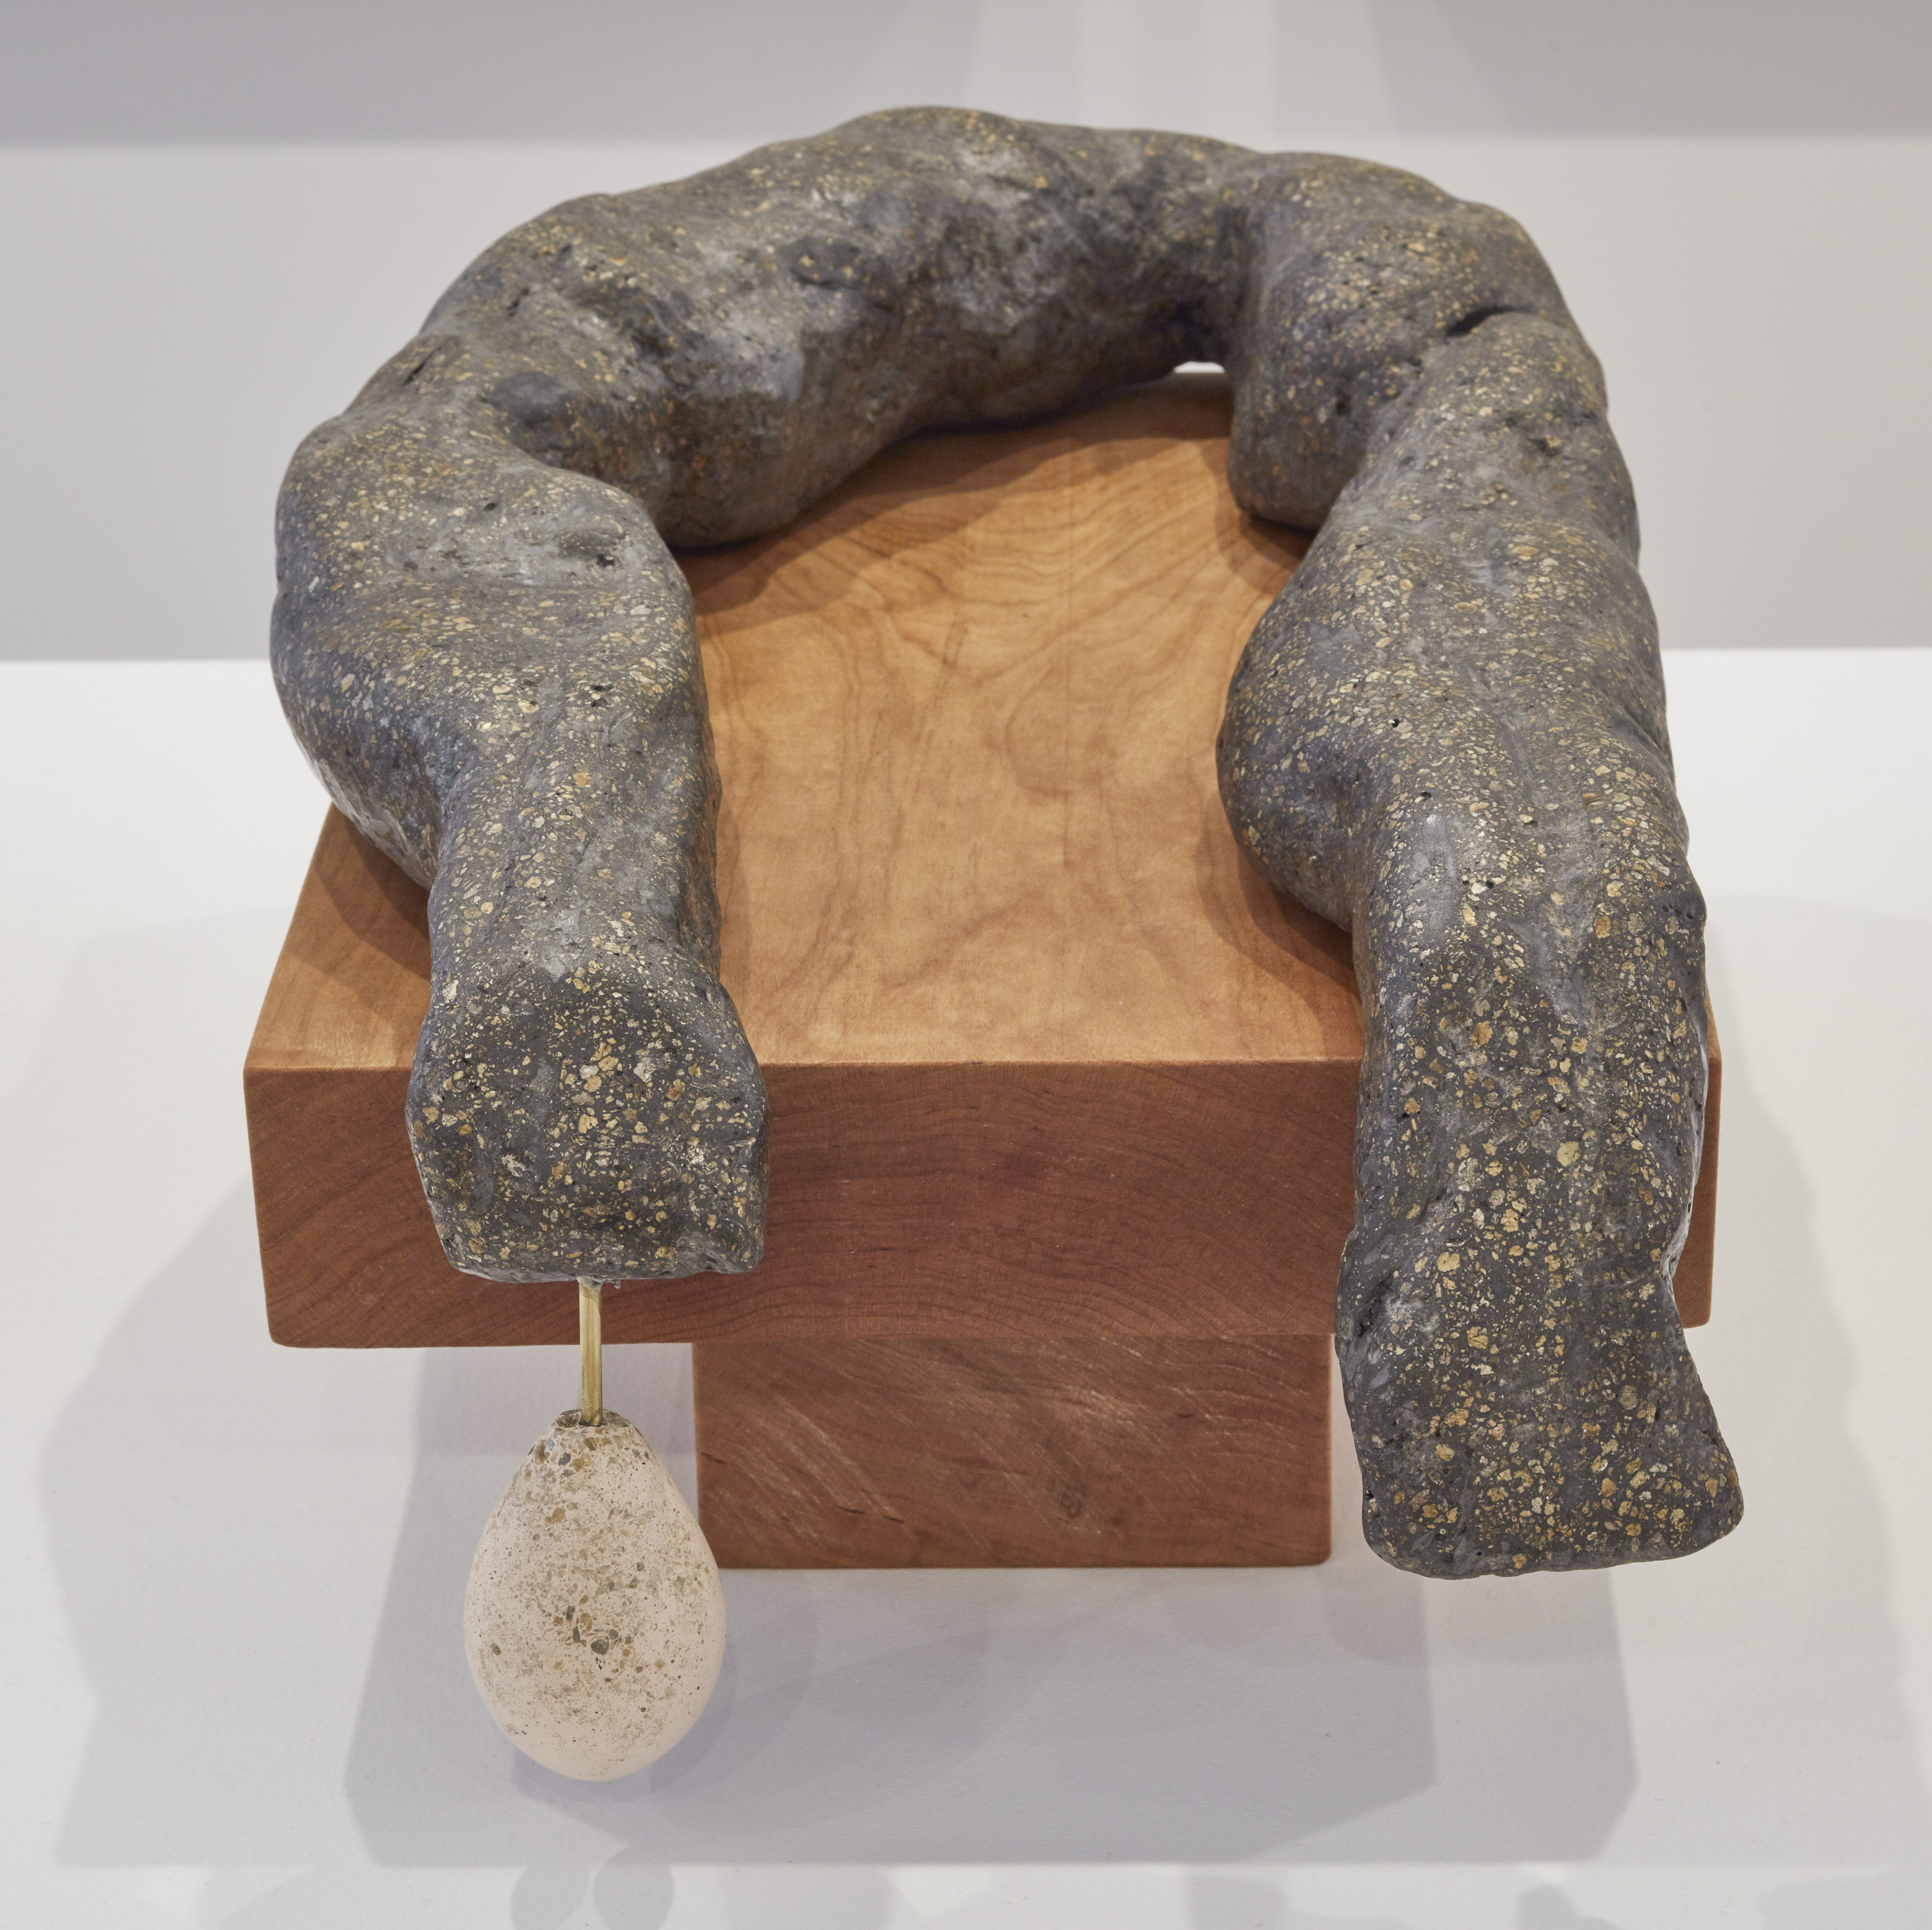 Detail (6 Untitled Stones)